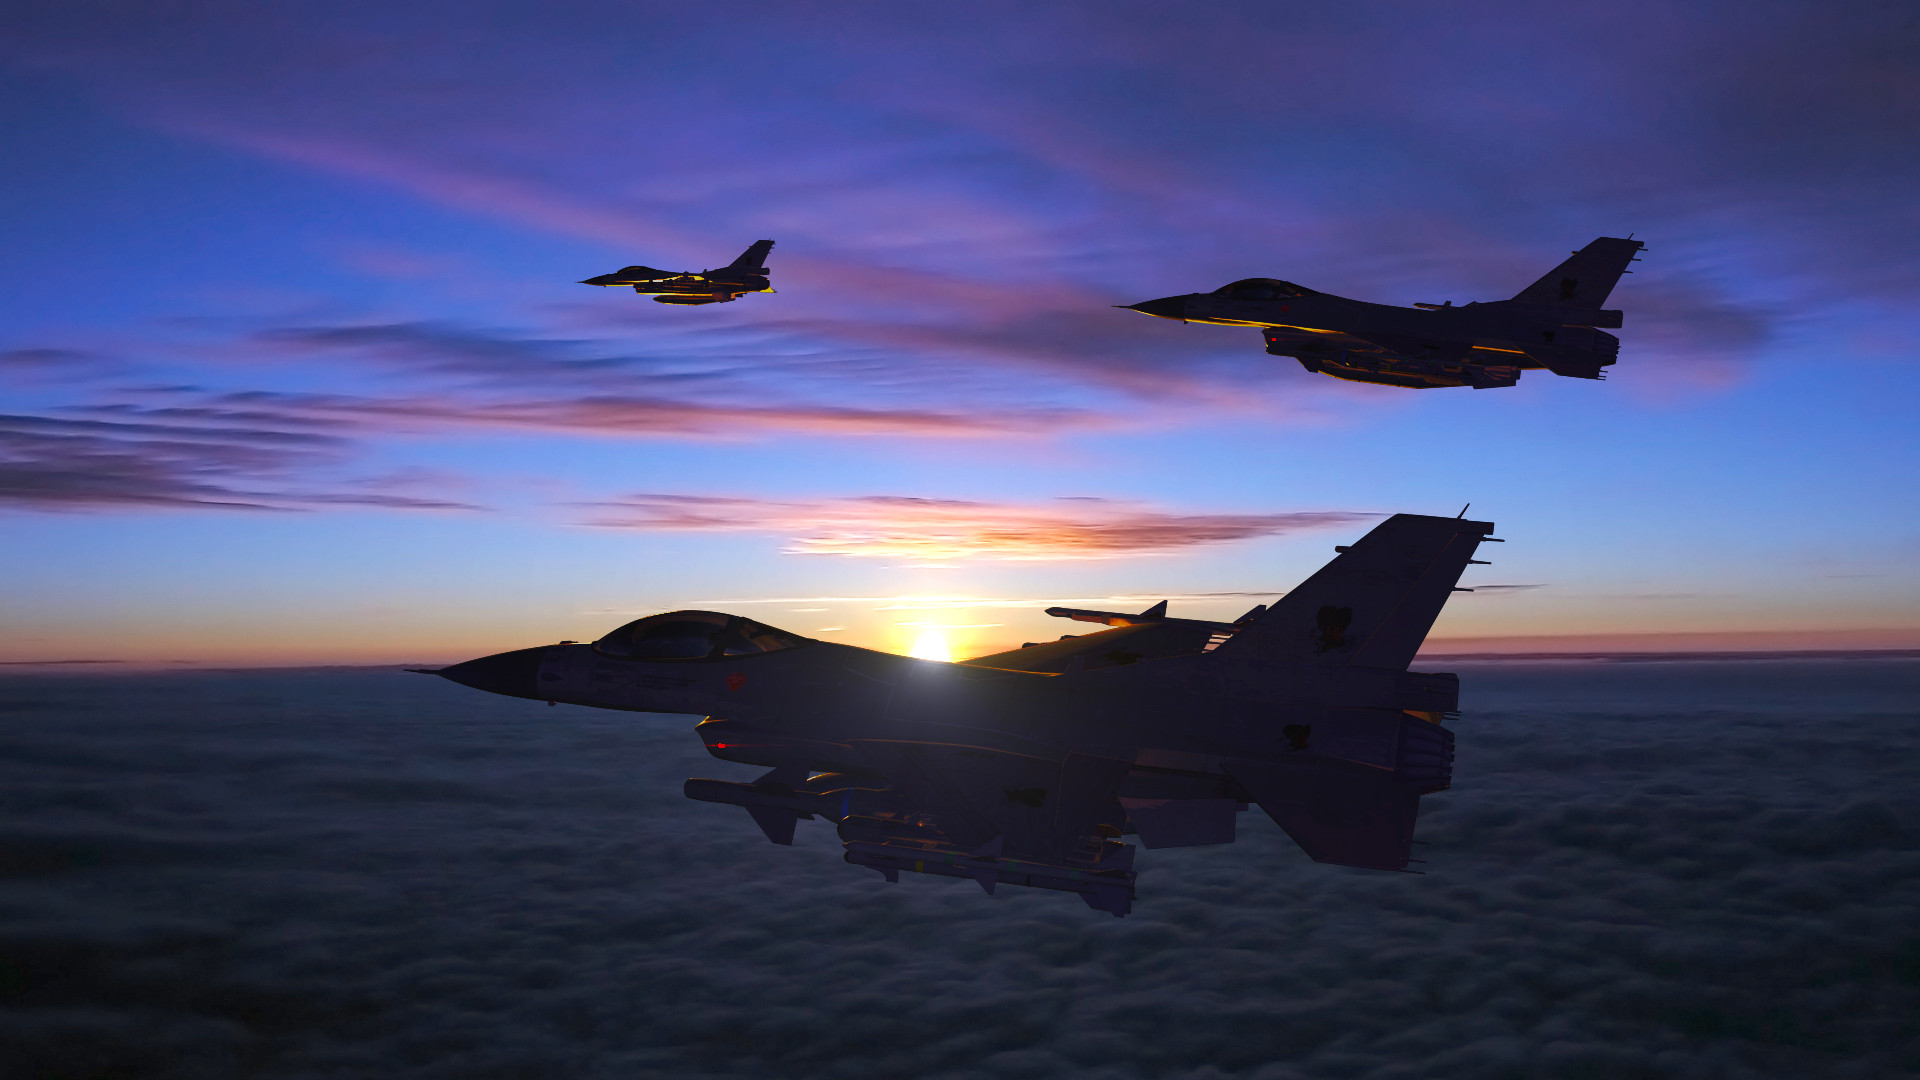 Alan planes 3 f 16 sunset apcinematics com